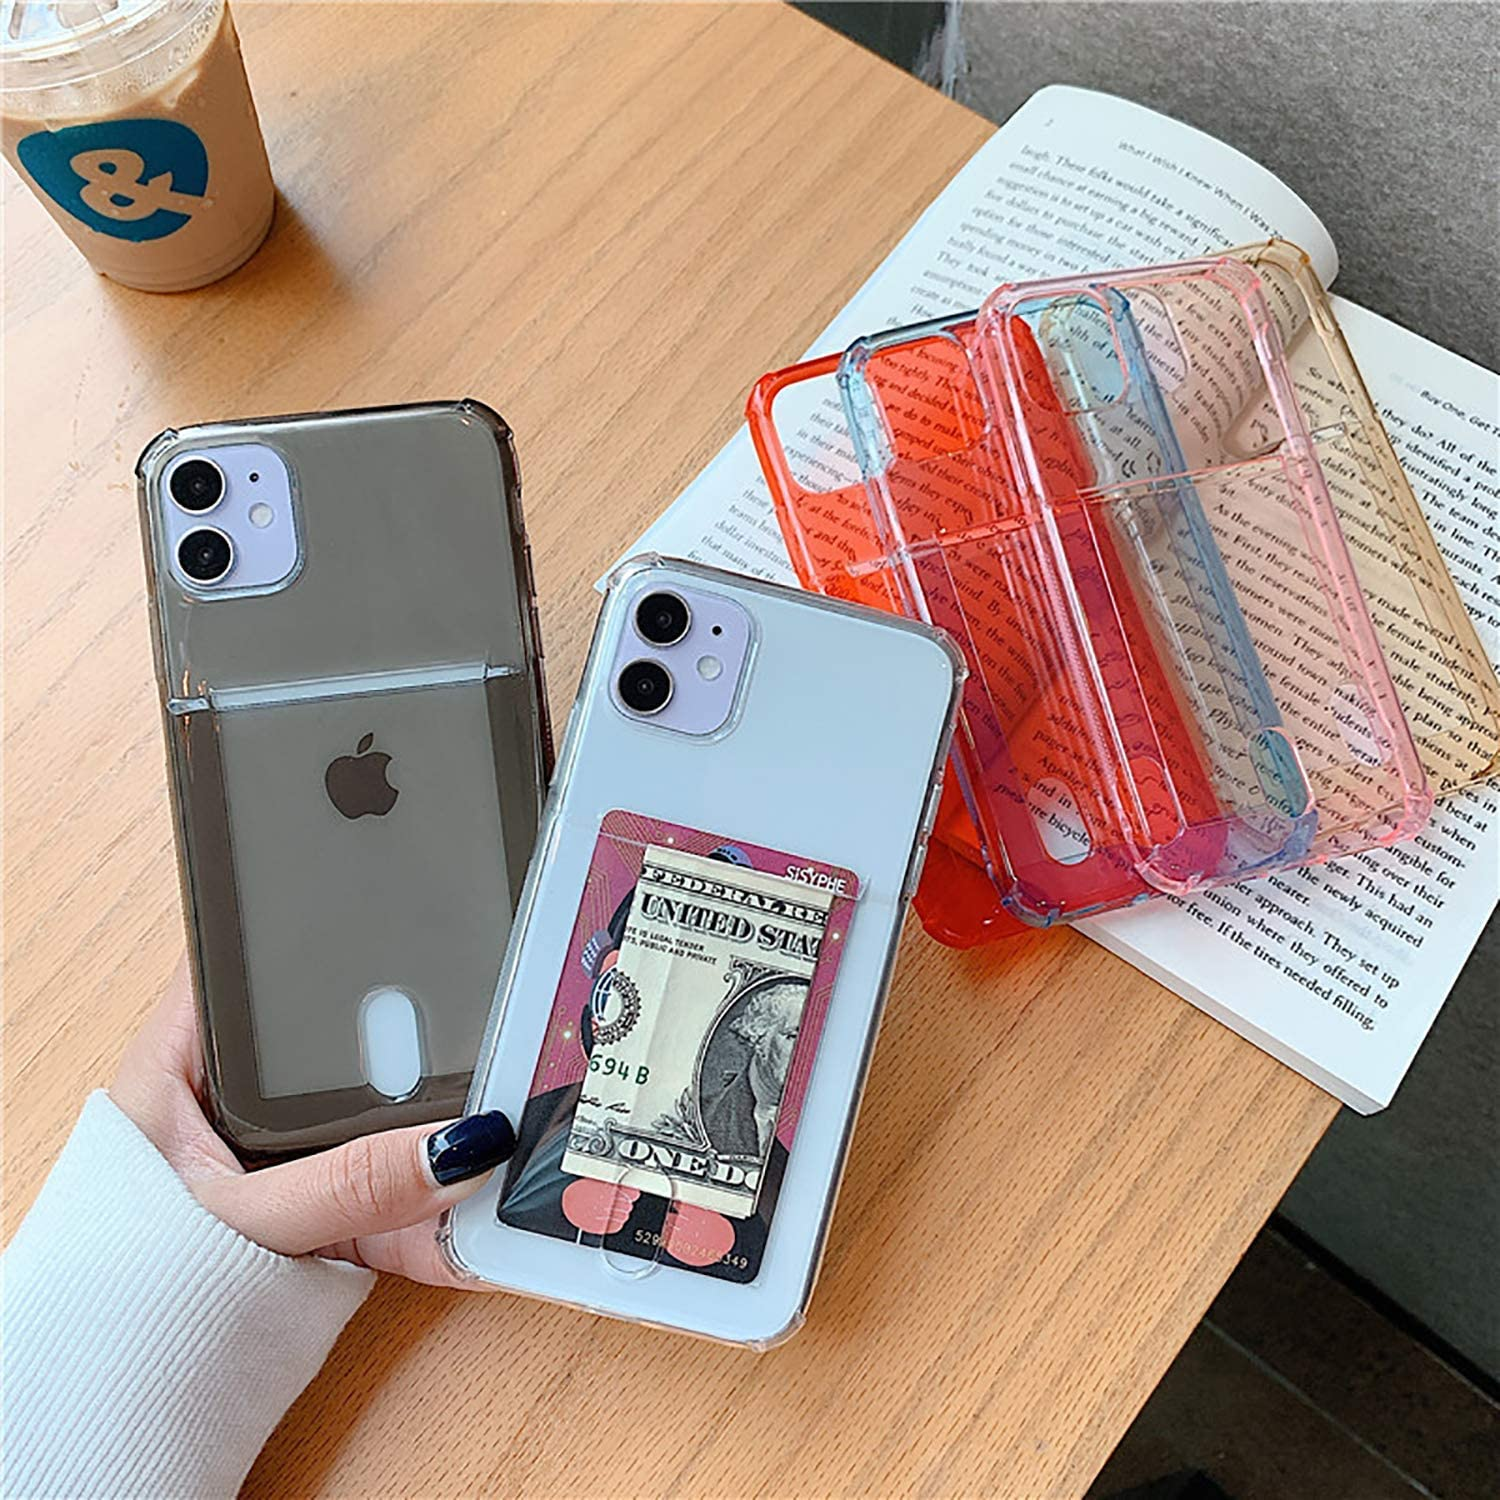 SZINTU Compatible with iPhone 12 Mini Clear Case with Card Holder Slot [Slim Fit][Wireless Charger Compatible] Protective Soft TPU Shockproof Flexible Bumper Wallet Case for iPhone 12 Mini 5.4